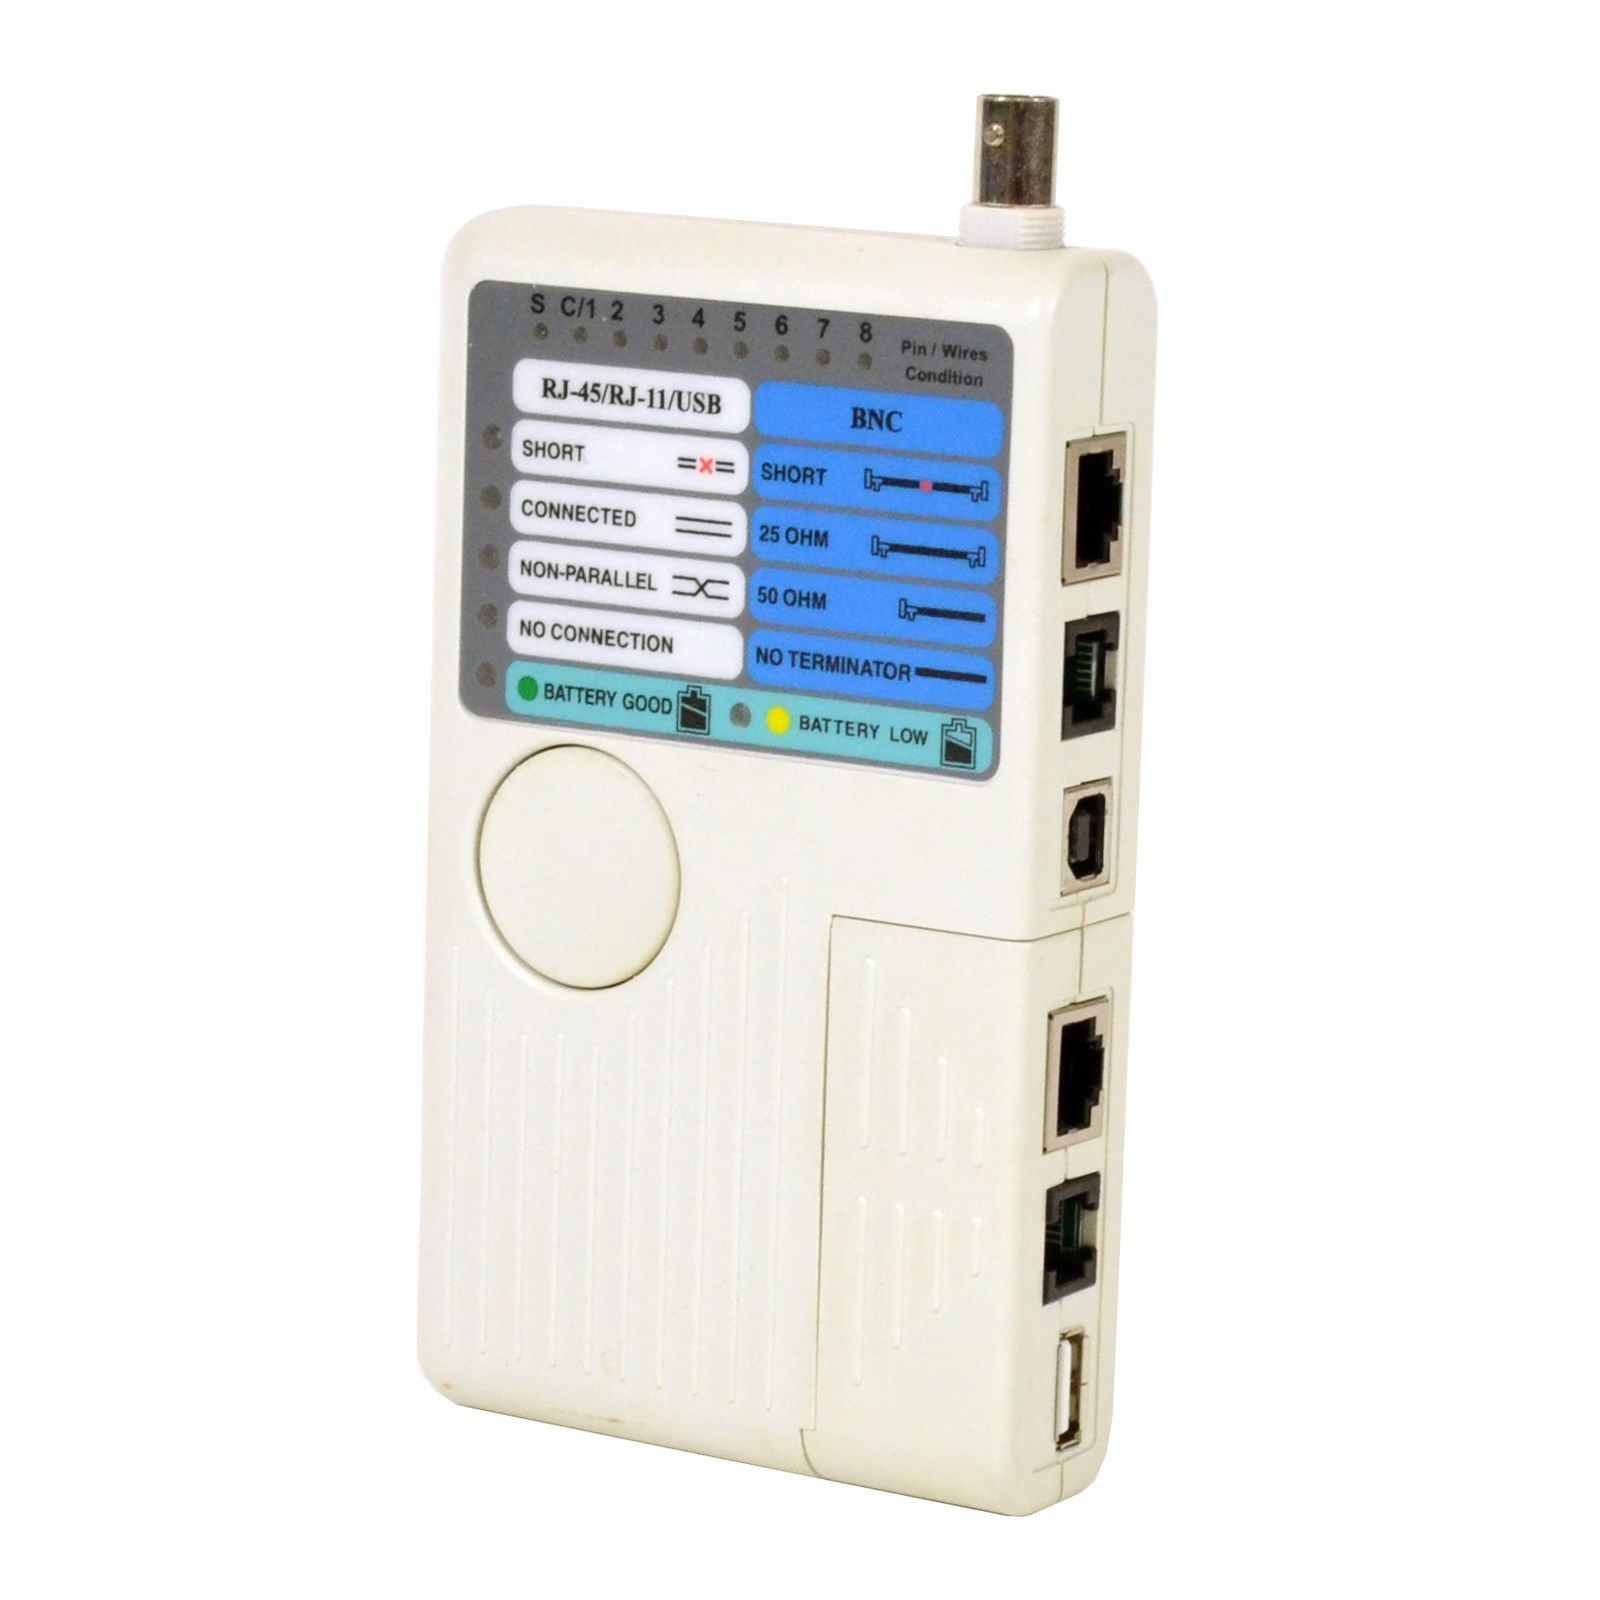 4 In 1 Network Cable Tester Rj45 Rj11 Usb Bnc Lan Cat5 Cat6 Wiring Diagram Wire 804551050596 Ebay